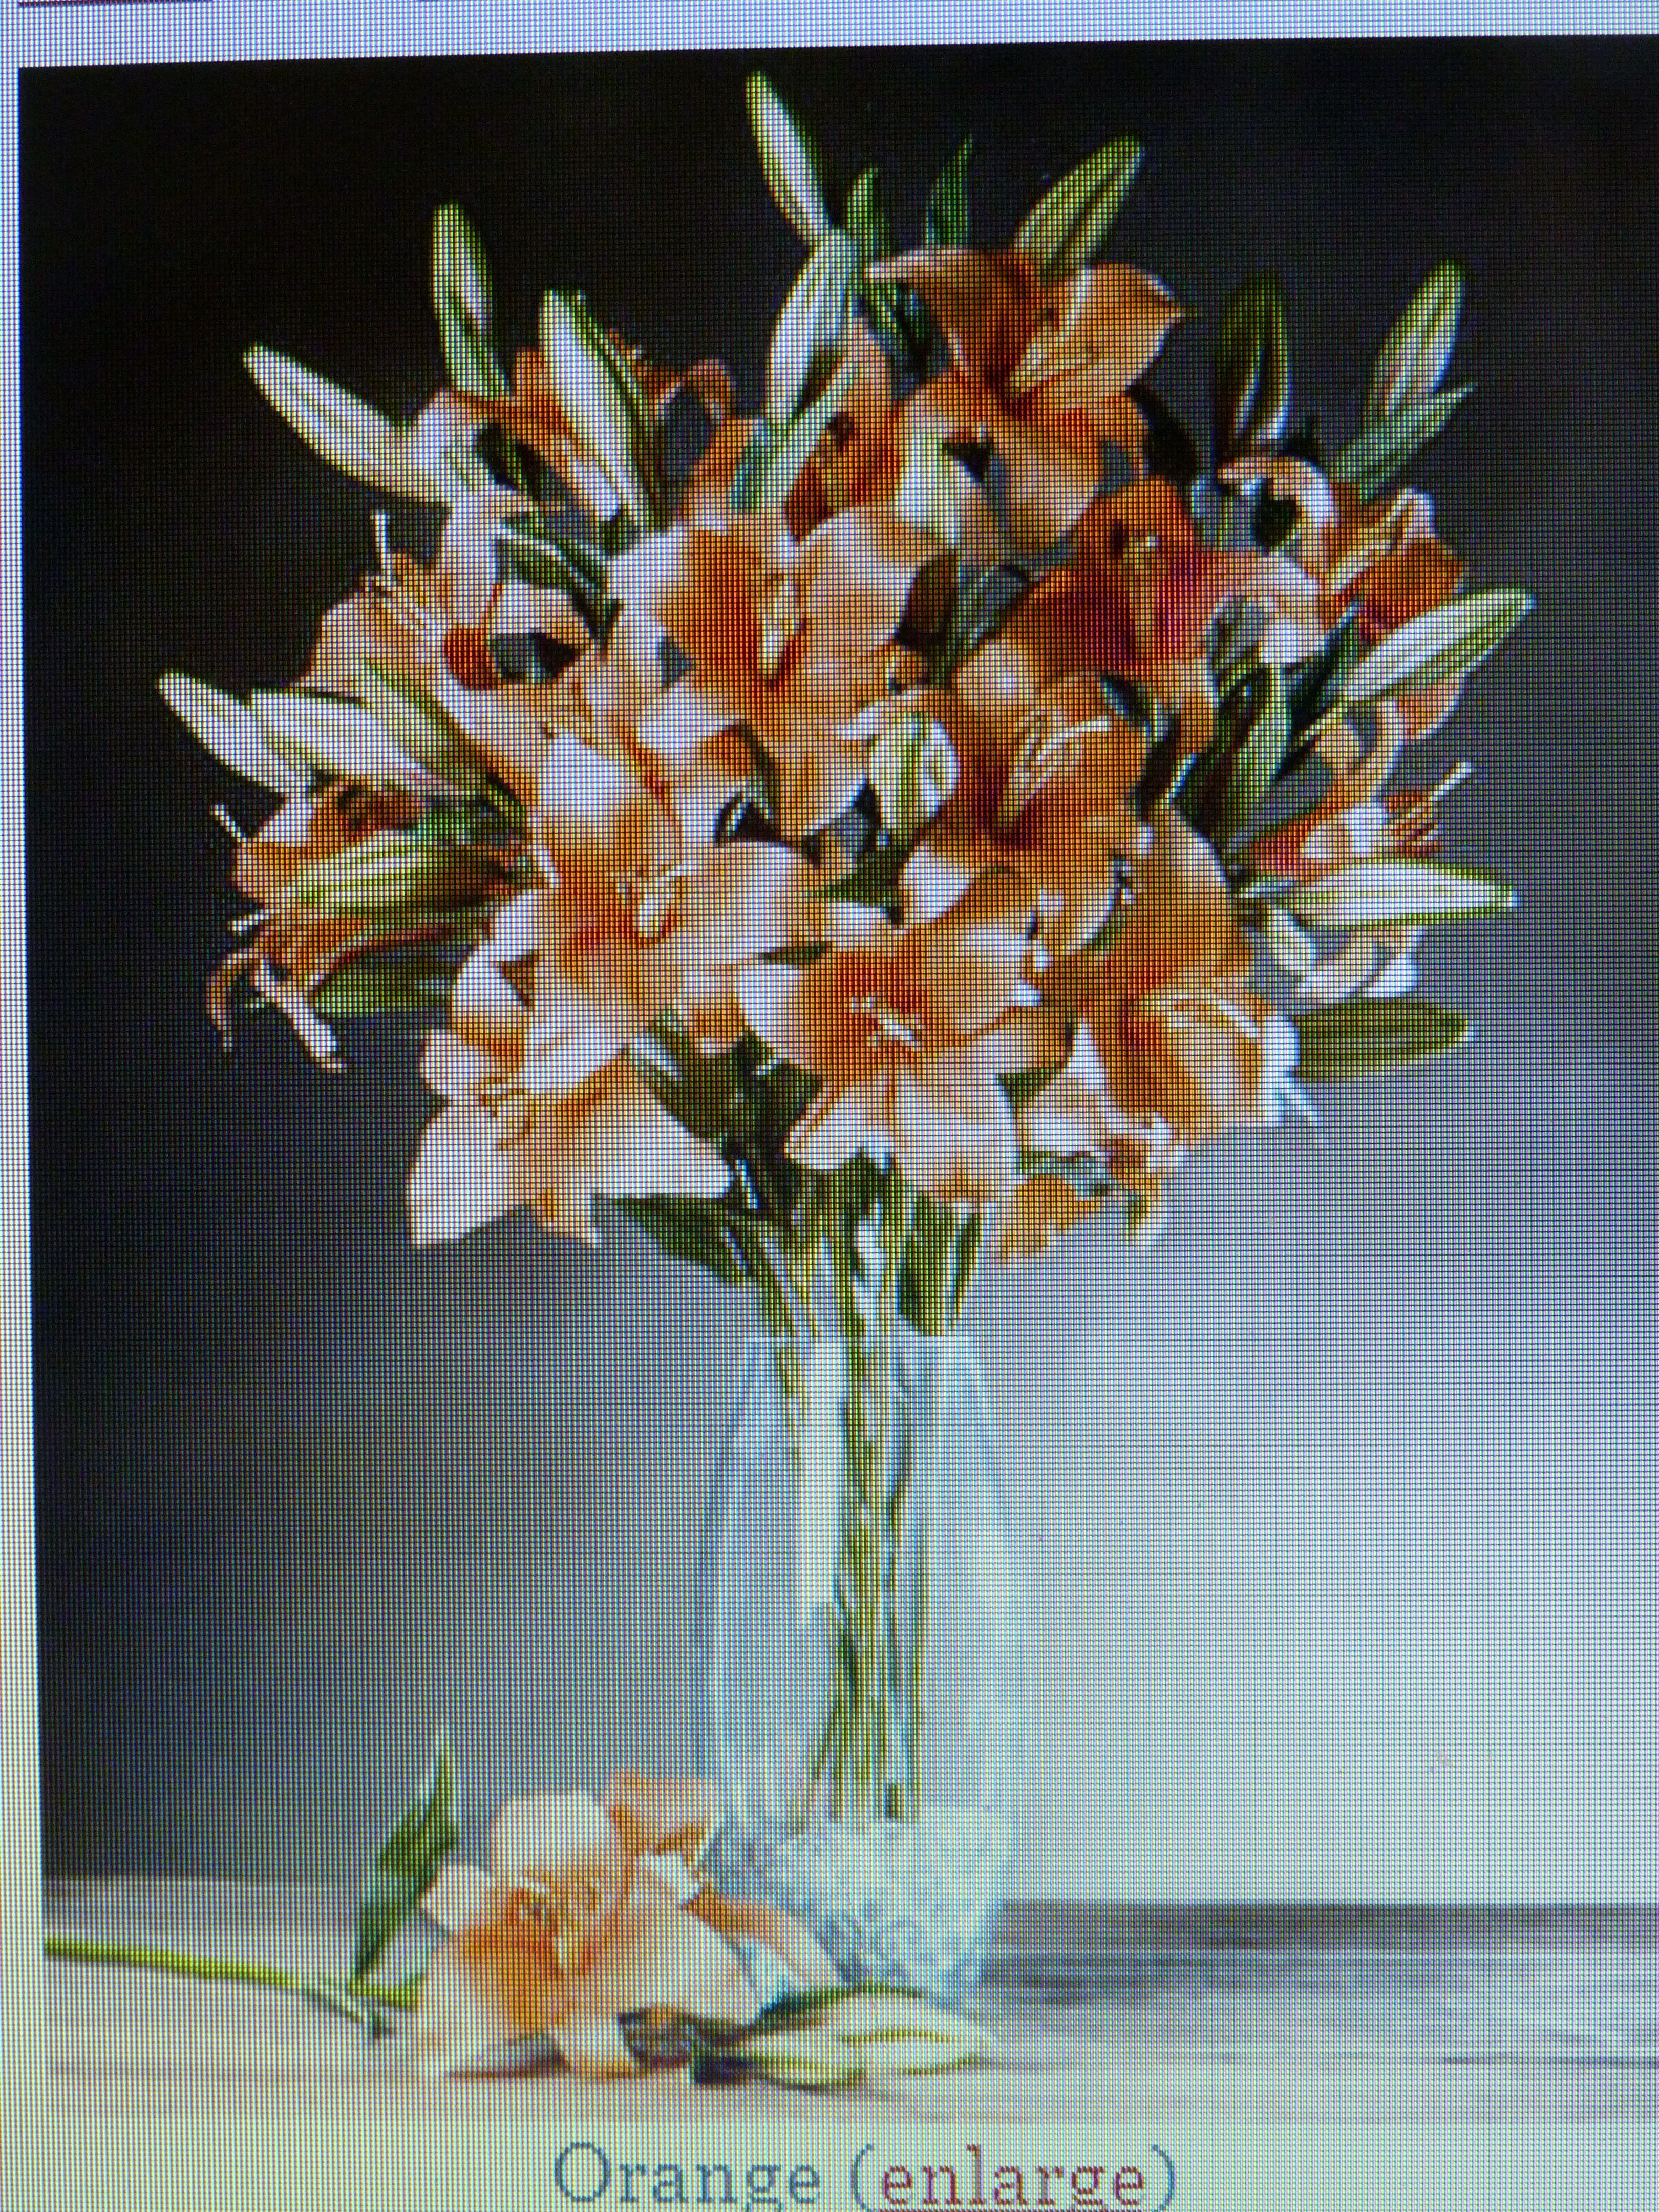 Orange tiger lilies centerpieces or change to silk cattails onion orange tiger lilies centerpieces or change to silk cattails onion cattails orange tiger lilies purple blue irises in a blue vase with stones or glass izmirmasajfo